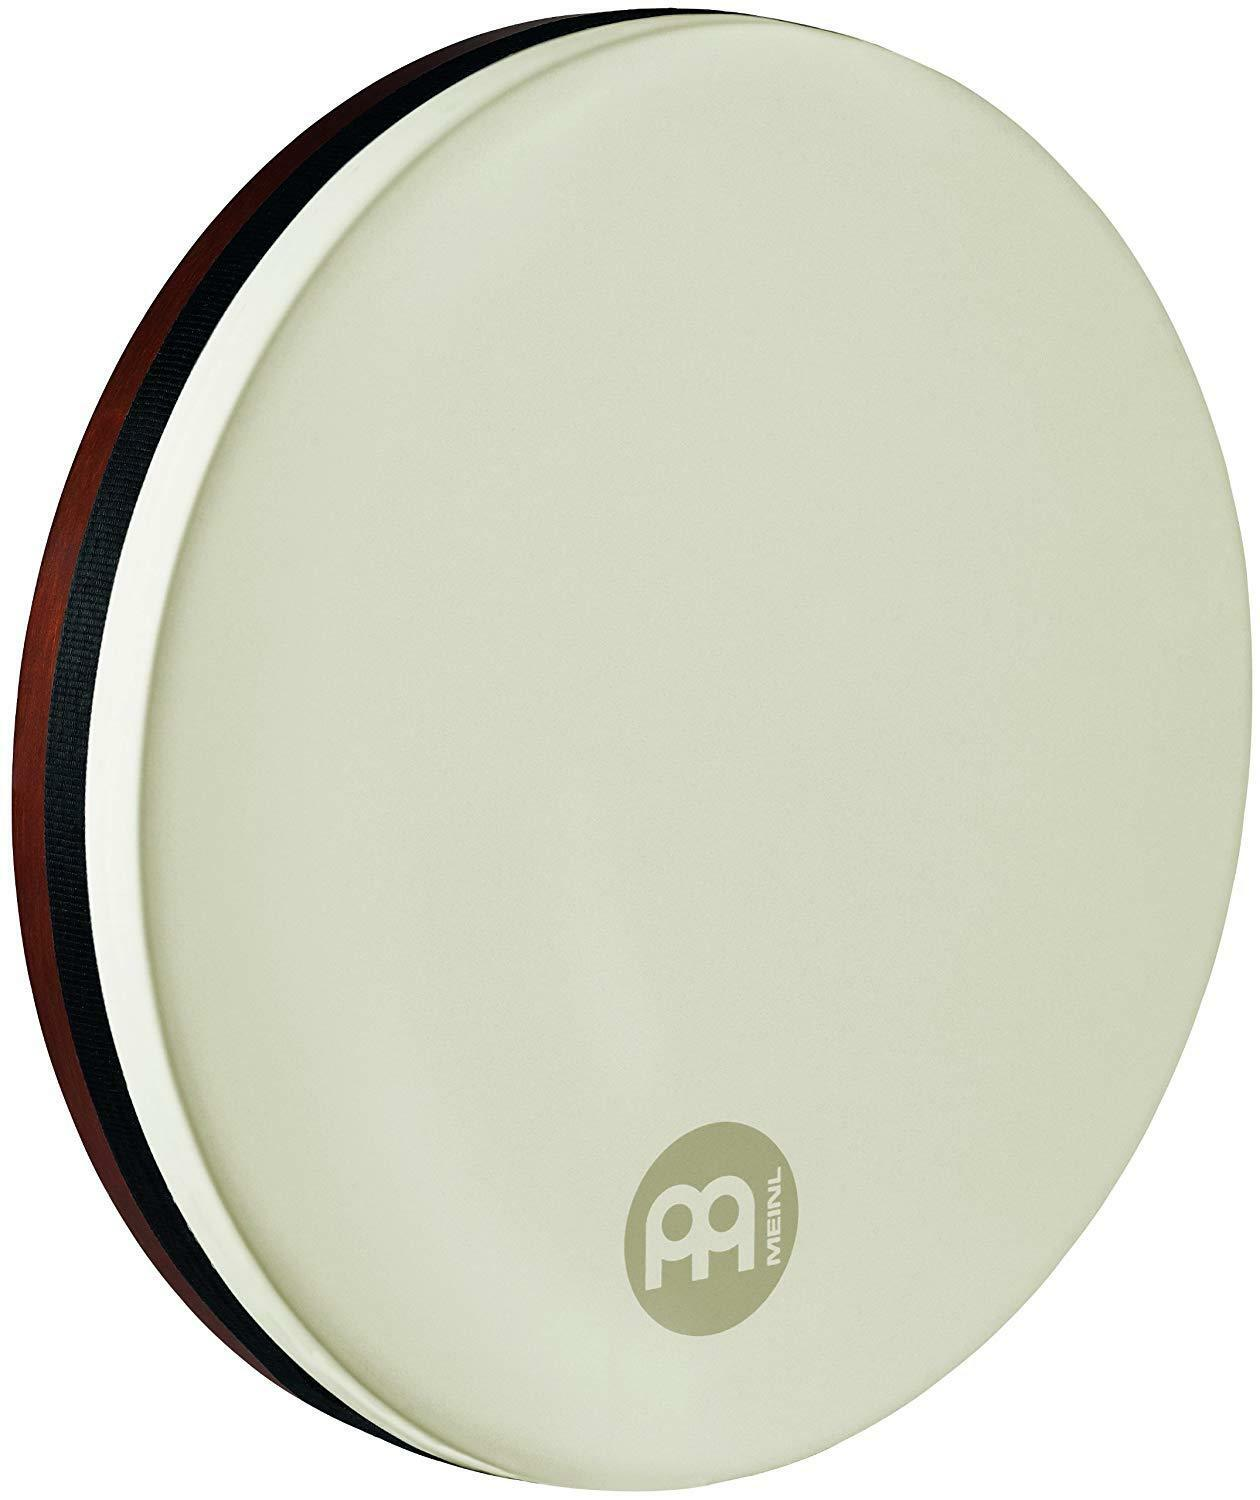 Meinl Percussion 16 Zoll Synthetic Head Bendigrs Frame Drums - braun - FD16BE-TF